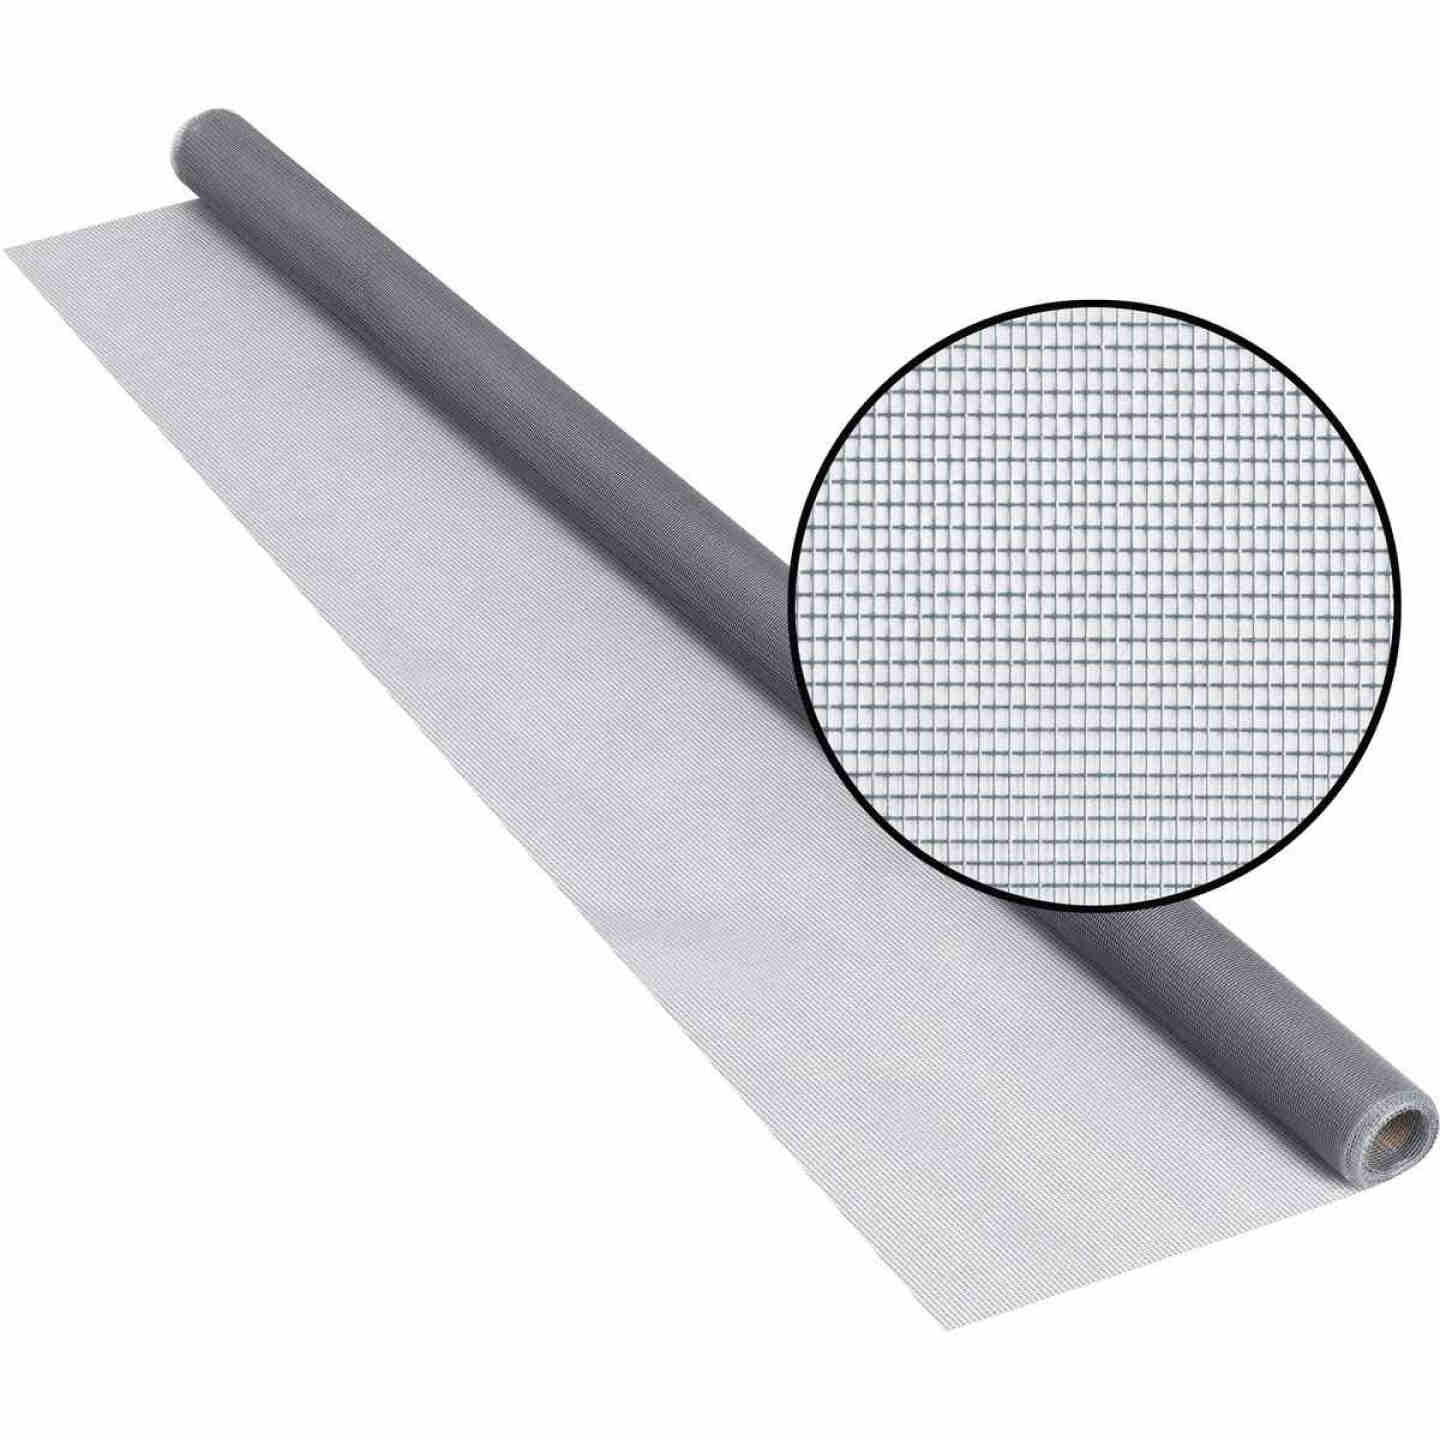 Phifer 36 In. x 84 In. Gray Fiberglass Screen Cloth Ready Rolls Image 1